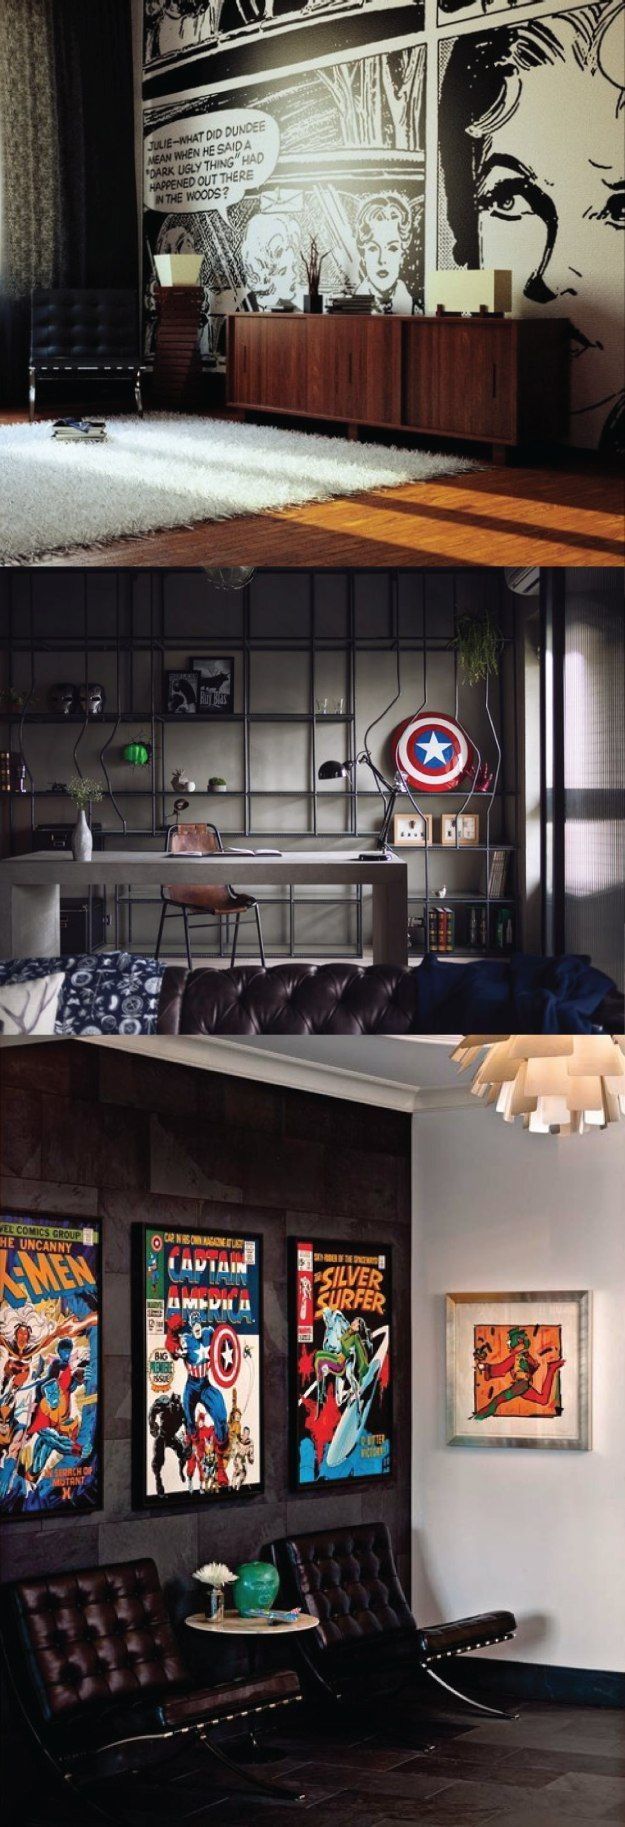 Check out Man Cave Ideas for Real Men by DIY Ready at http://diyready.com/man-cave-ideas-for-real-men/